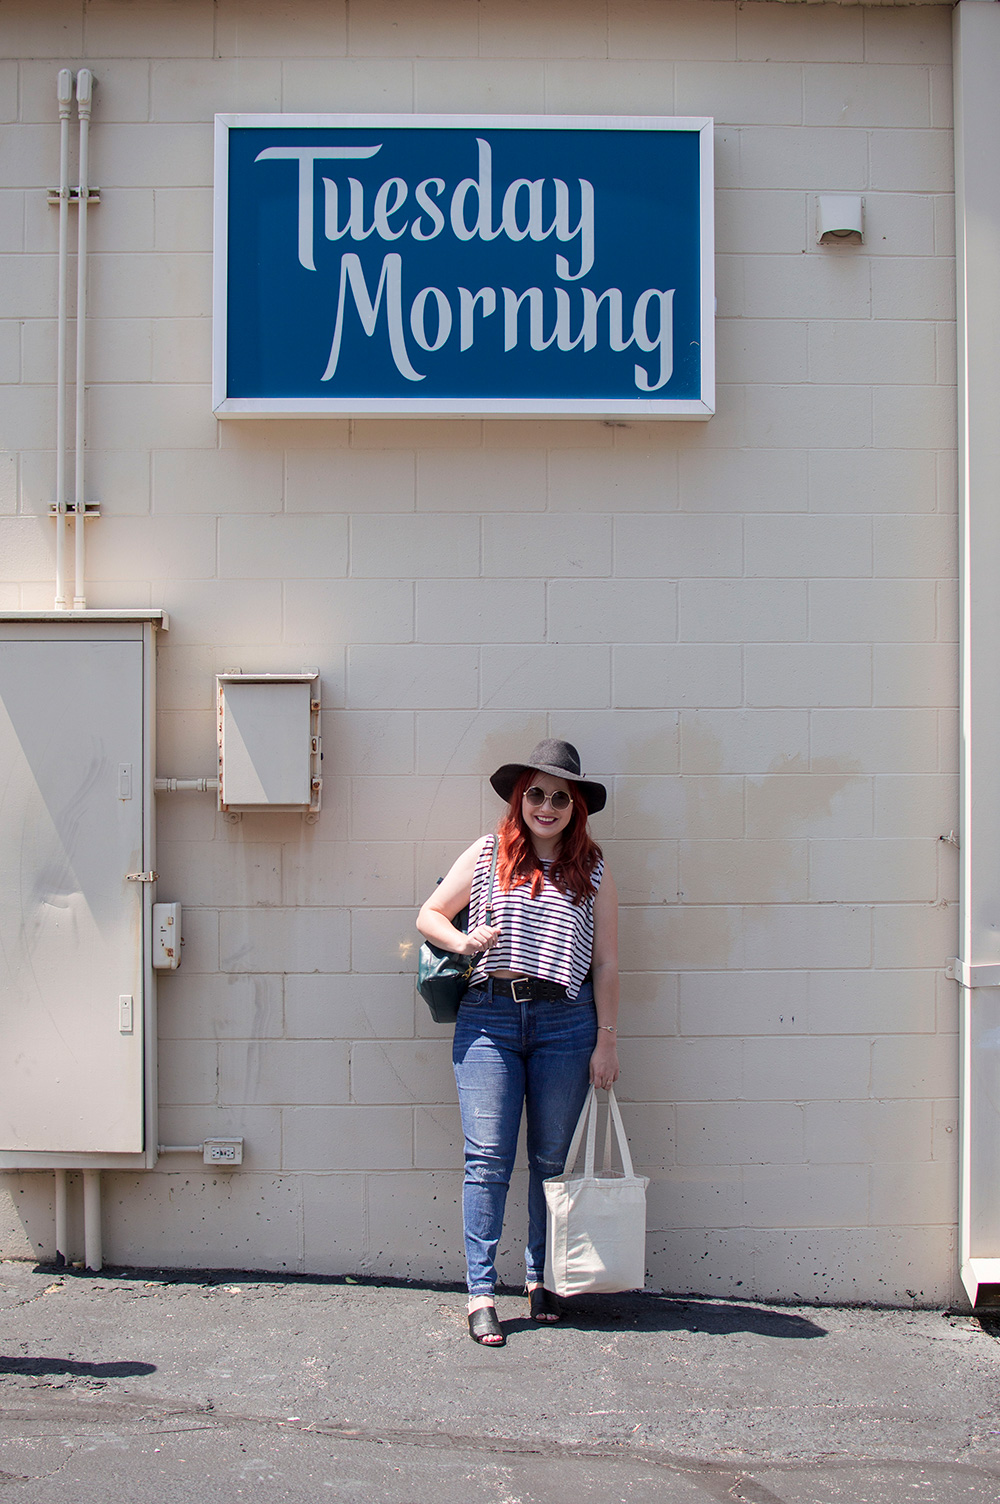 12 Tips for Finding the Best Deals at Tuesday Morning